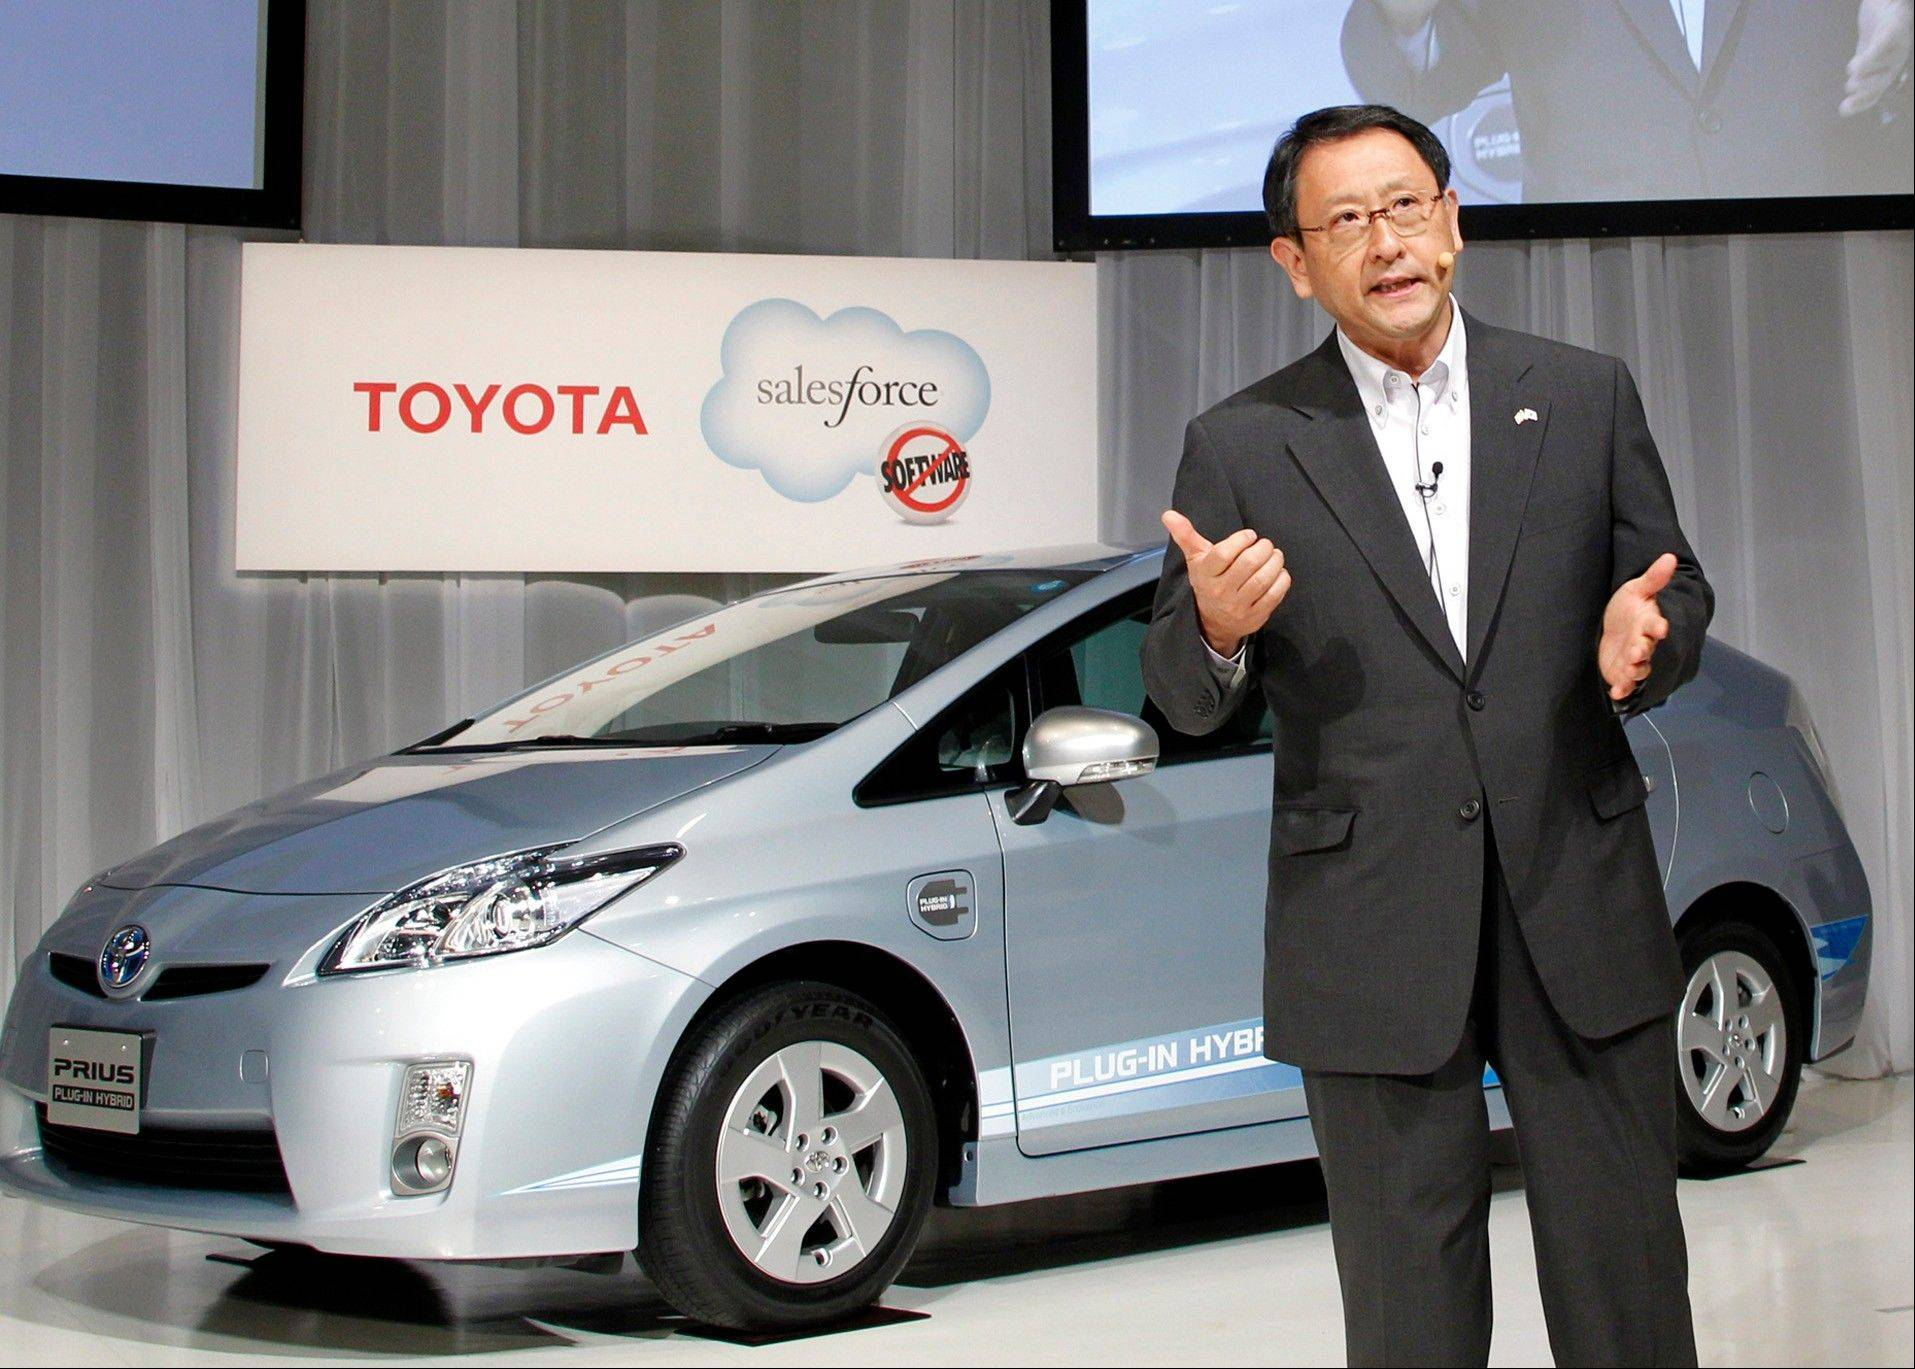 Toyota, beset in the last couple years by technical problems and the March disaster in Japan, is aiming for a comeback next year. Above, Toyota Motor Corp. President Akio Toyoda talks up his product.